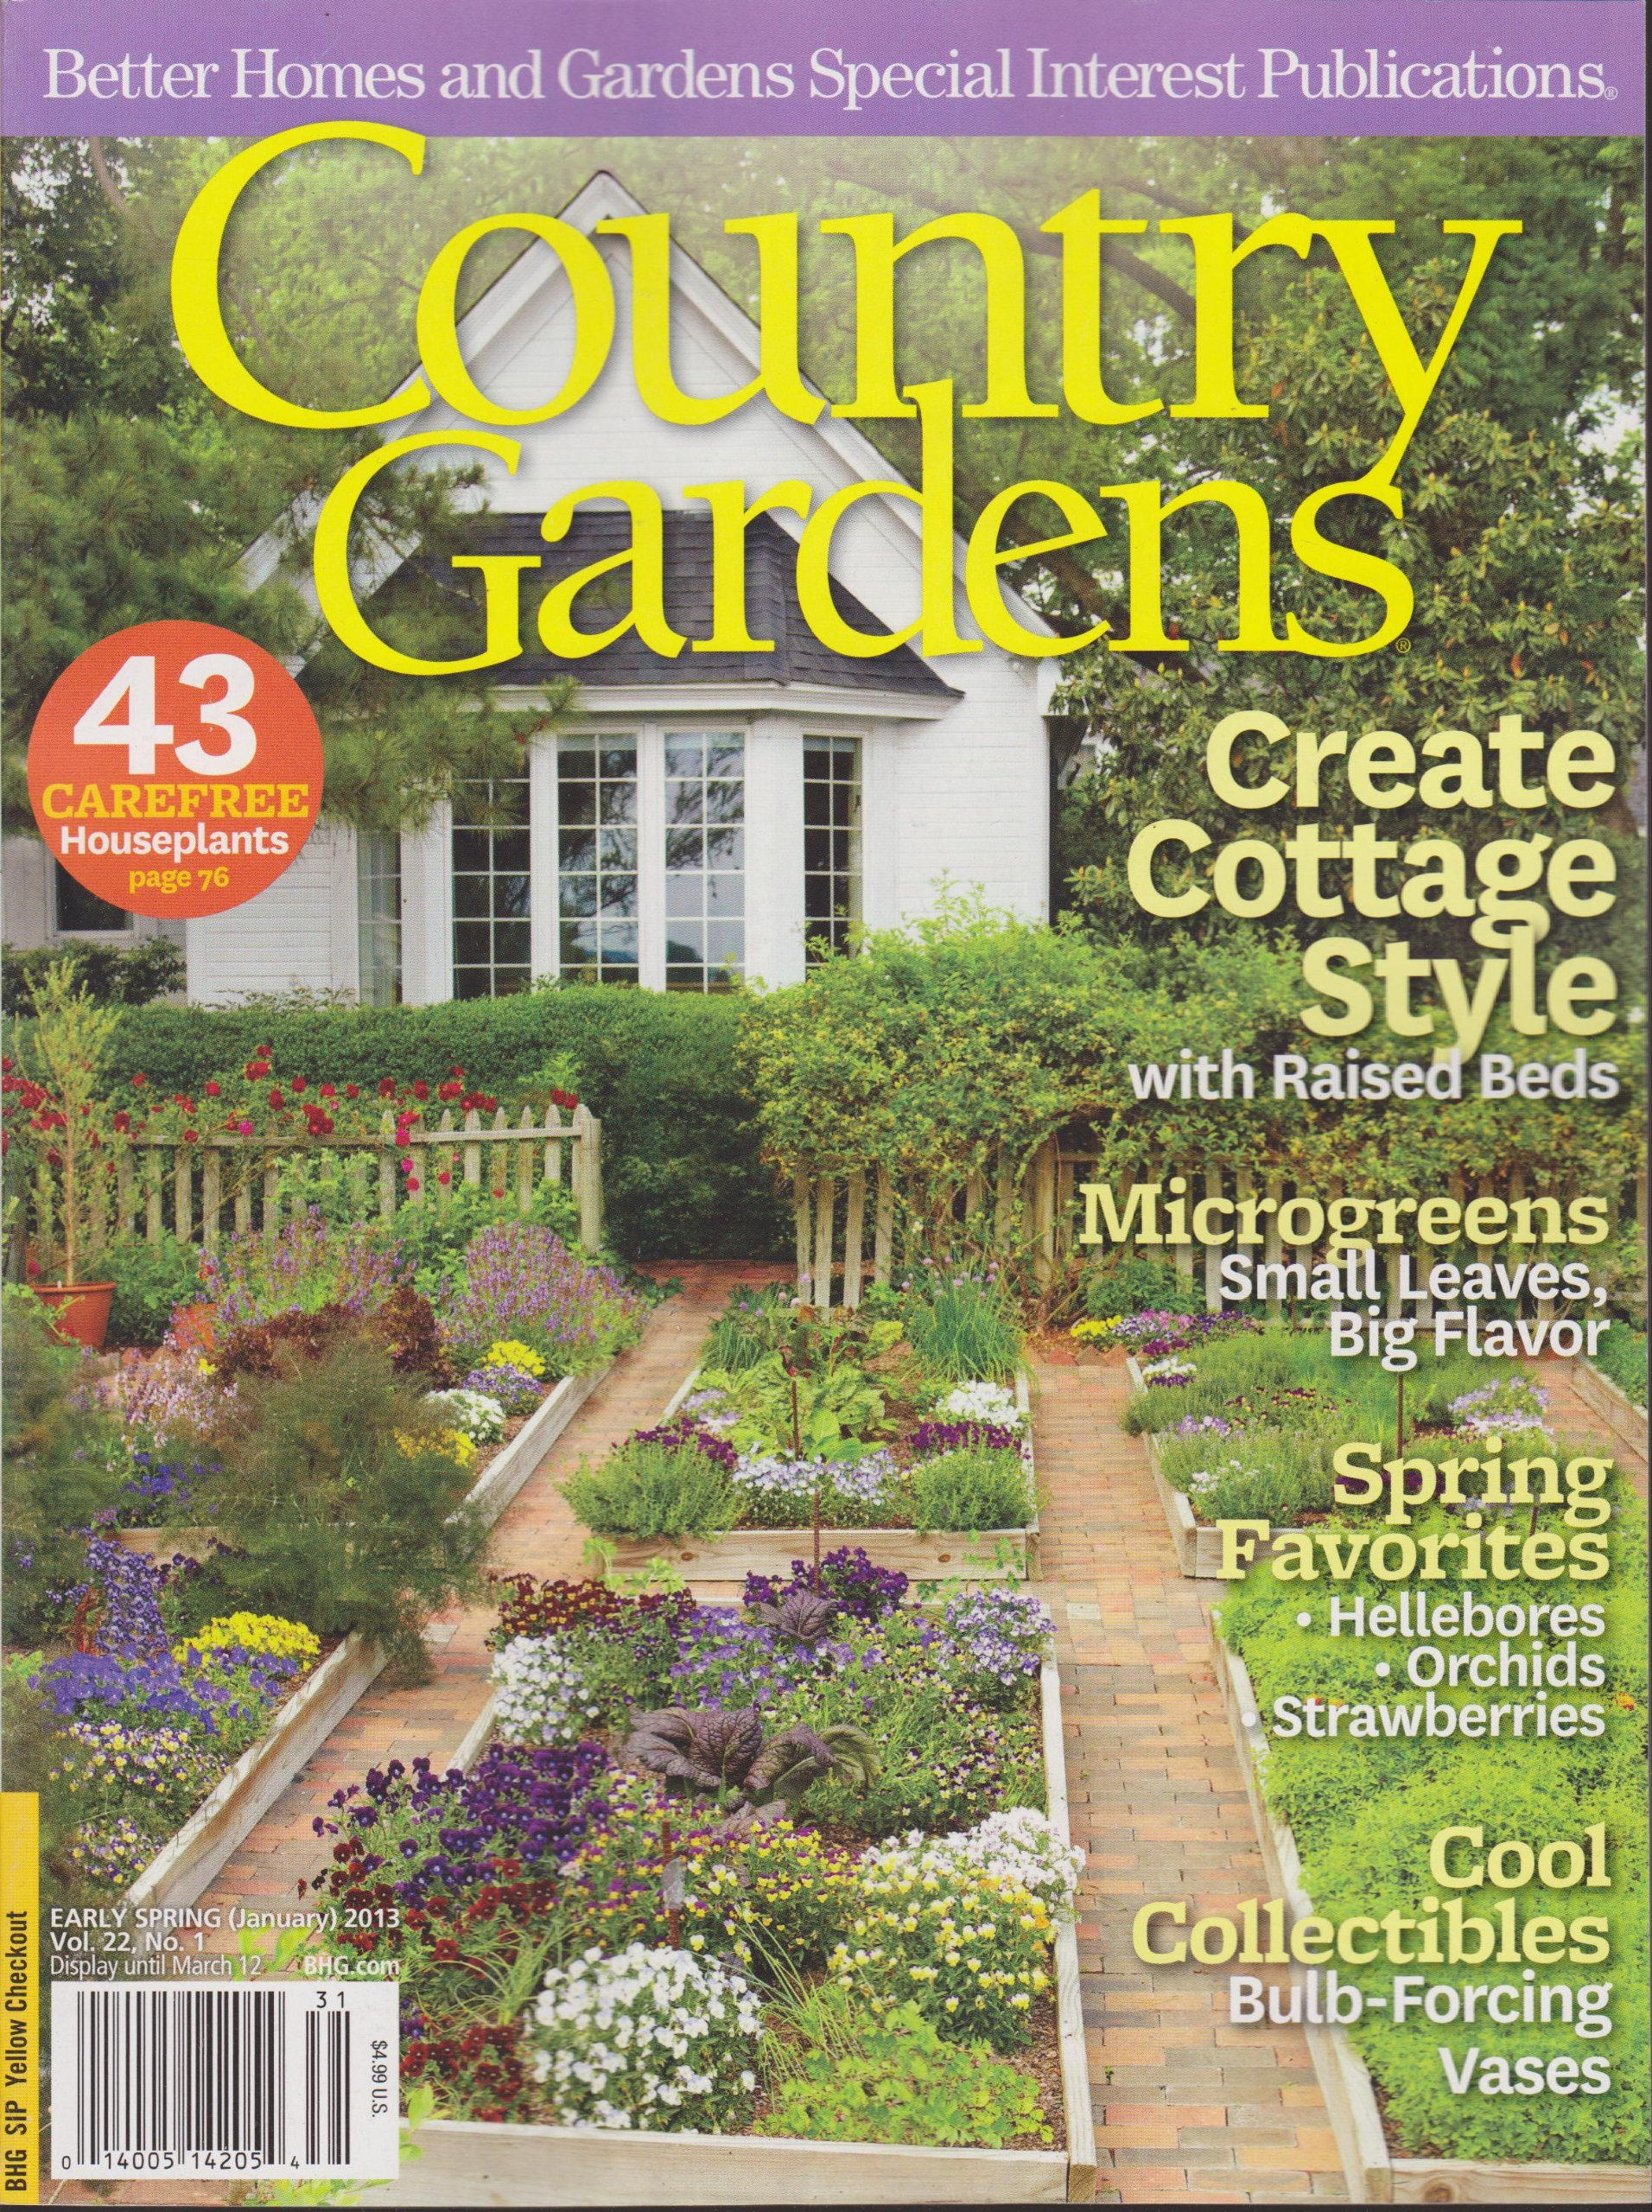 nobby design southern homes and gardens magazine. Country Gardens Magazine Early Spring 2013  Create Cottage Style Unusual Better Homes And Photos Beautiful Garden